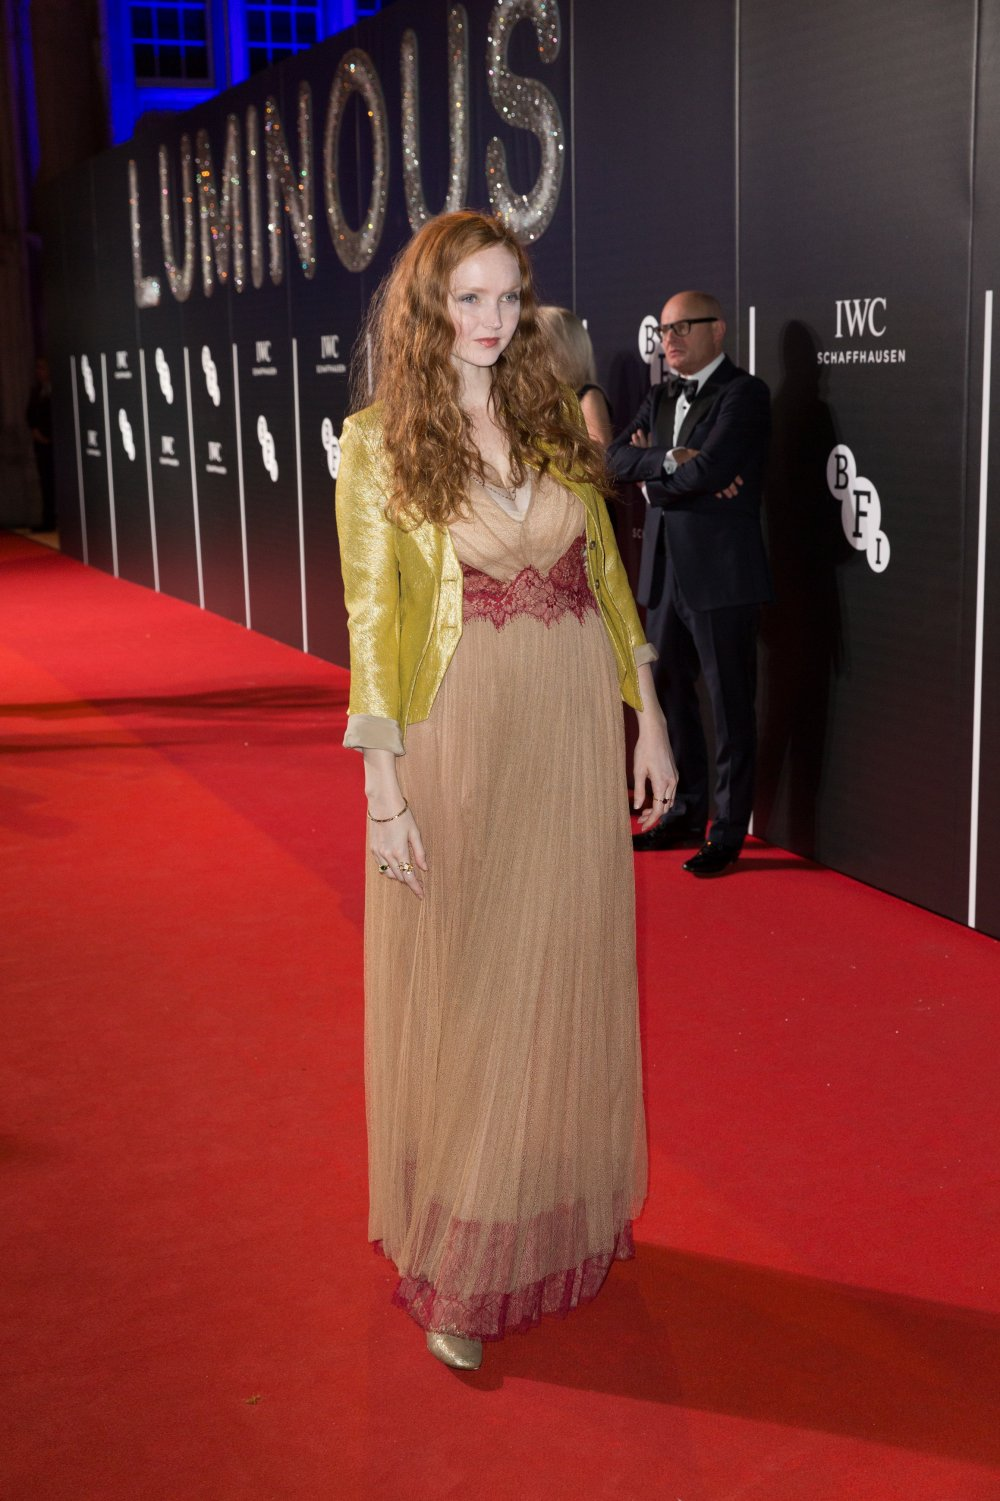 Lily Cole attends the BFI LUMINOUS gala 2015